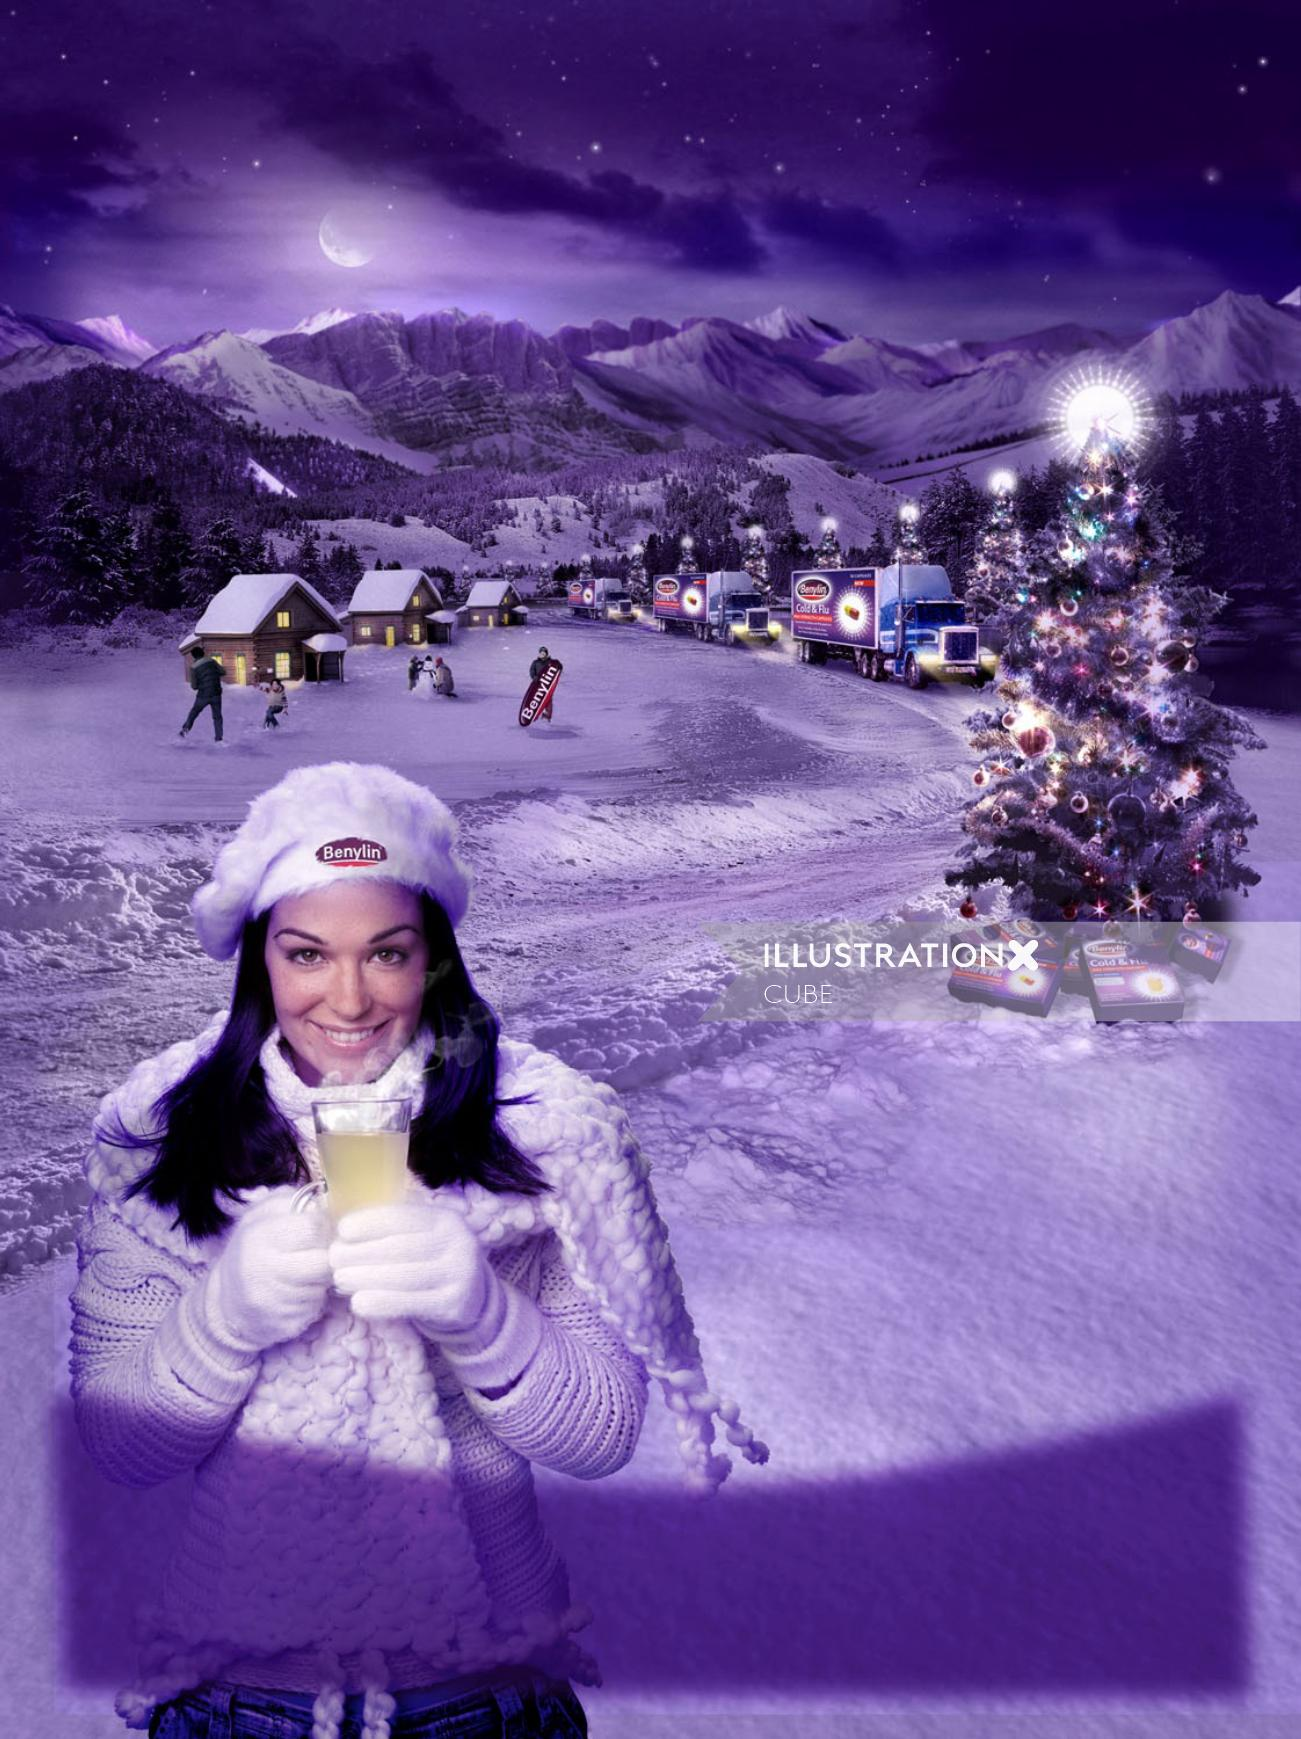 Realistic poster of woman in snow for benylin